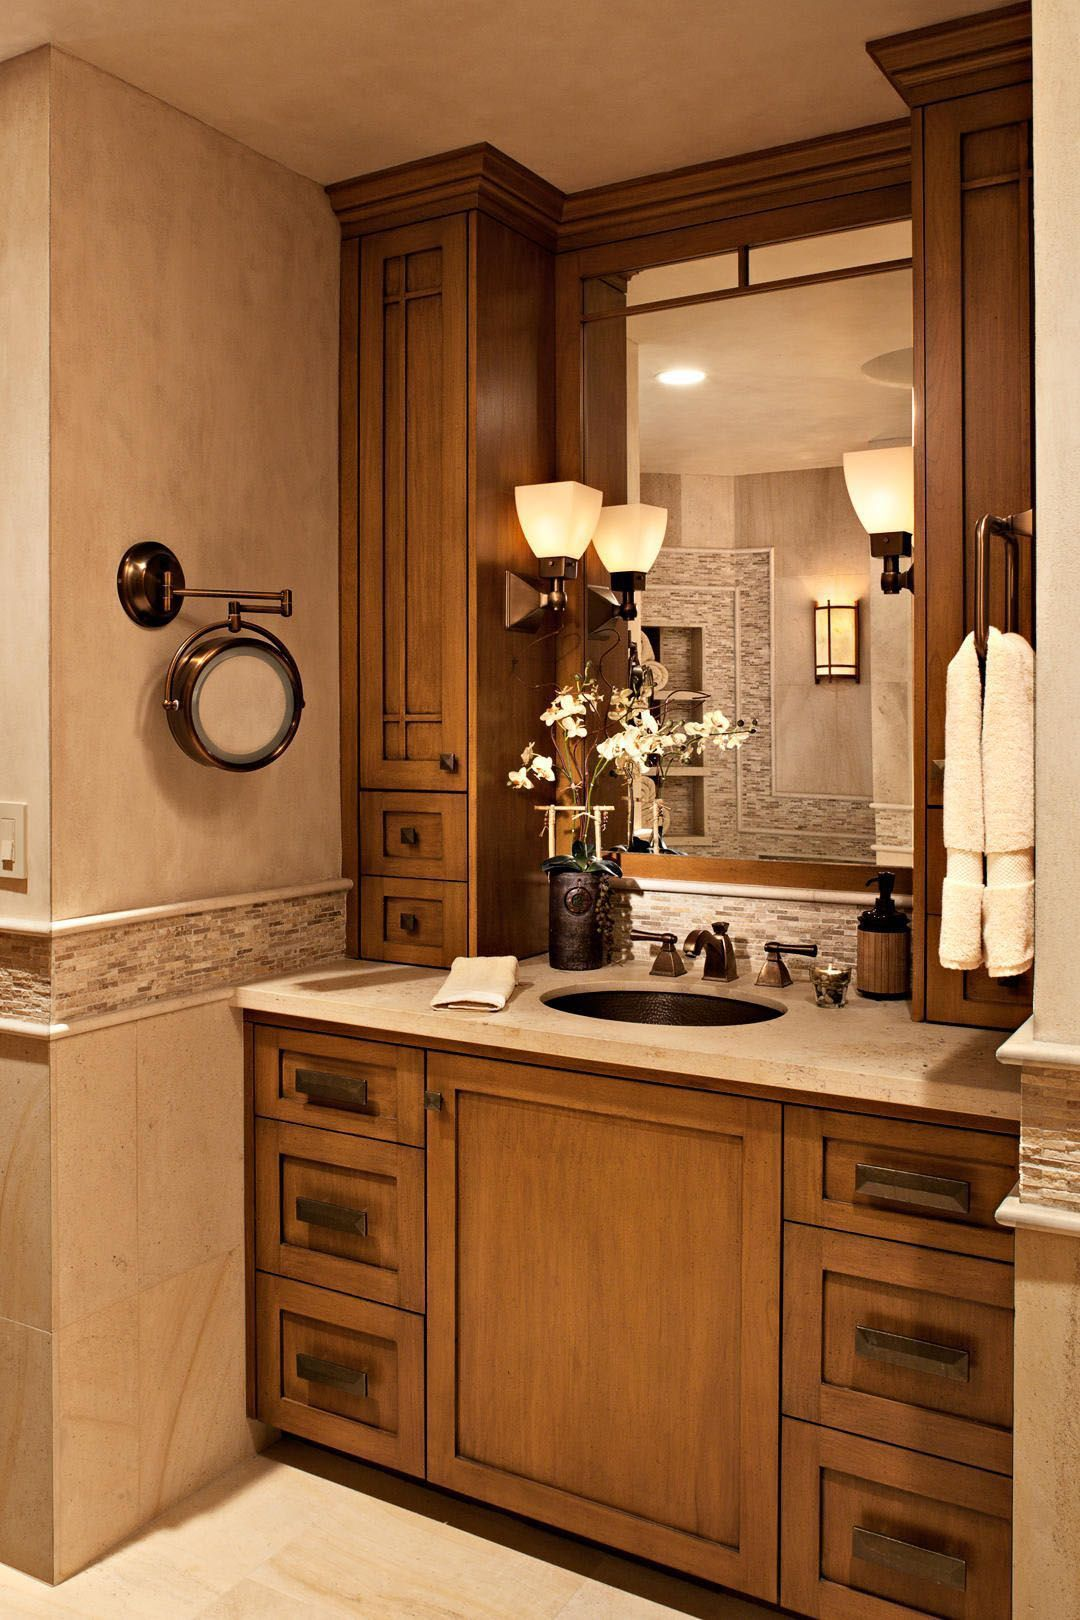 Bathroom Mirror Ideas To Reflect Your Style Bathroom Mirror Ideas